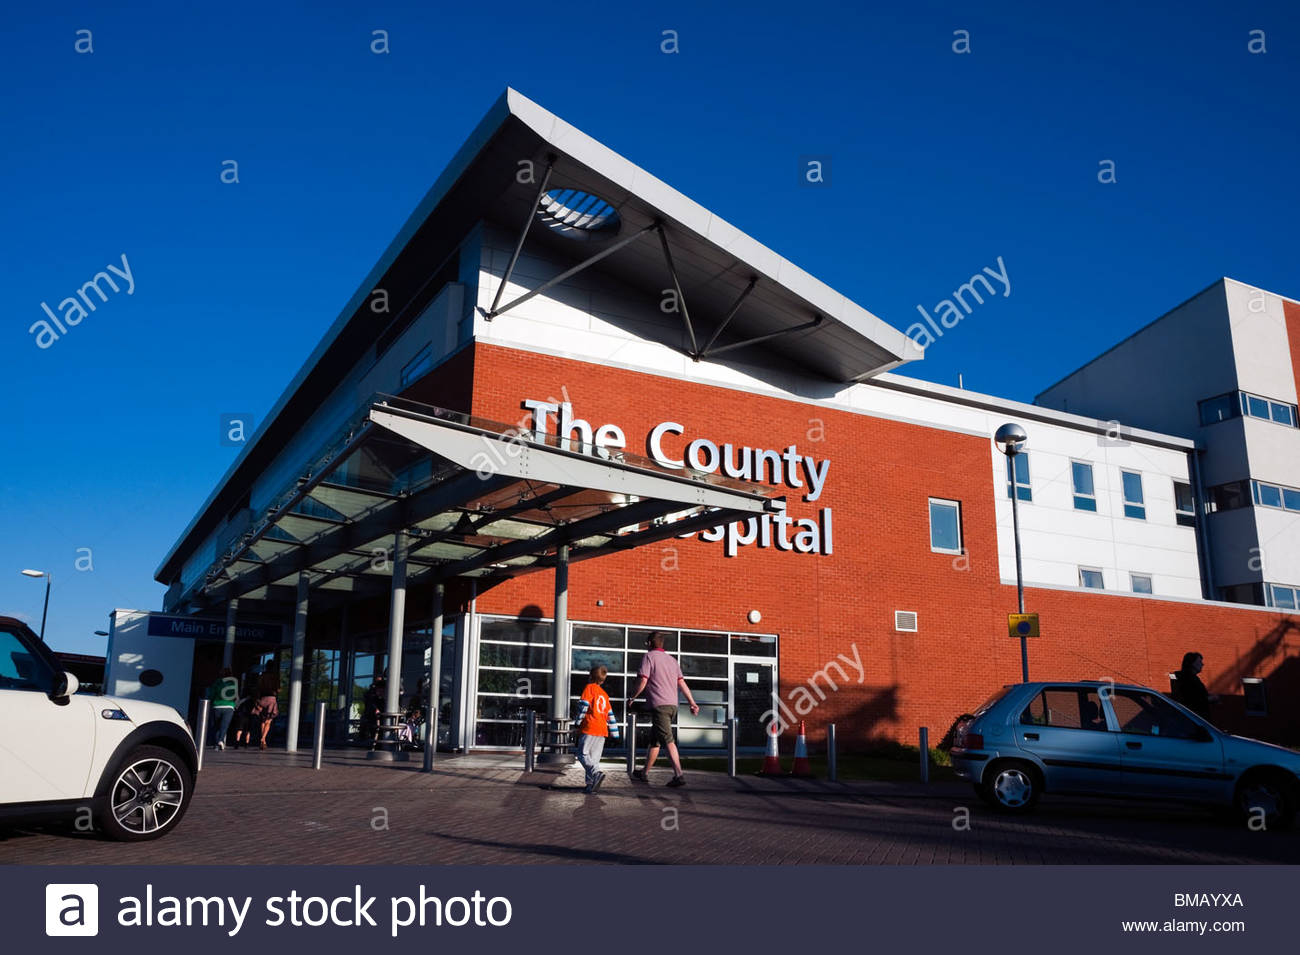 The County Hospital, Hereford, Herefordshire, UK. - Stock Image